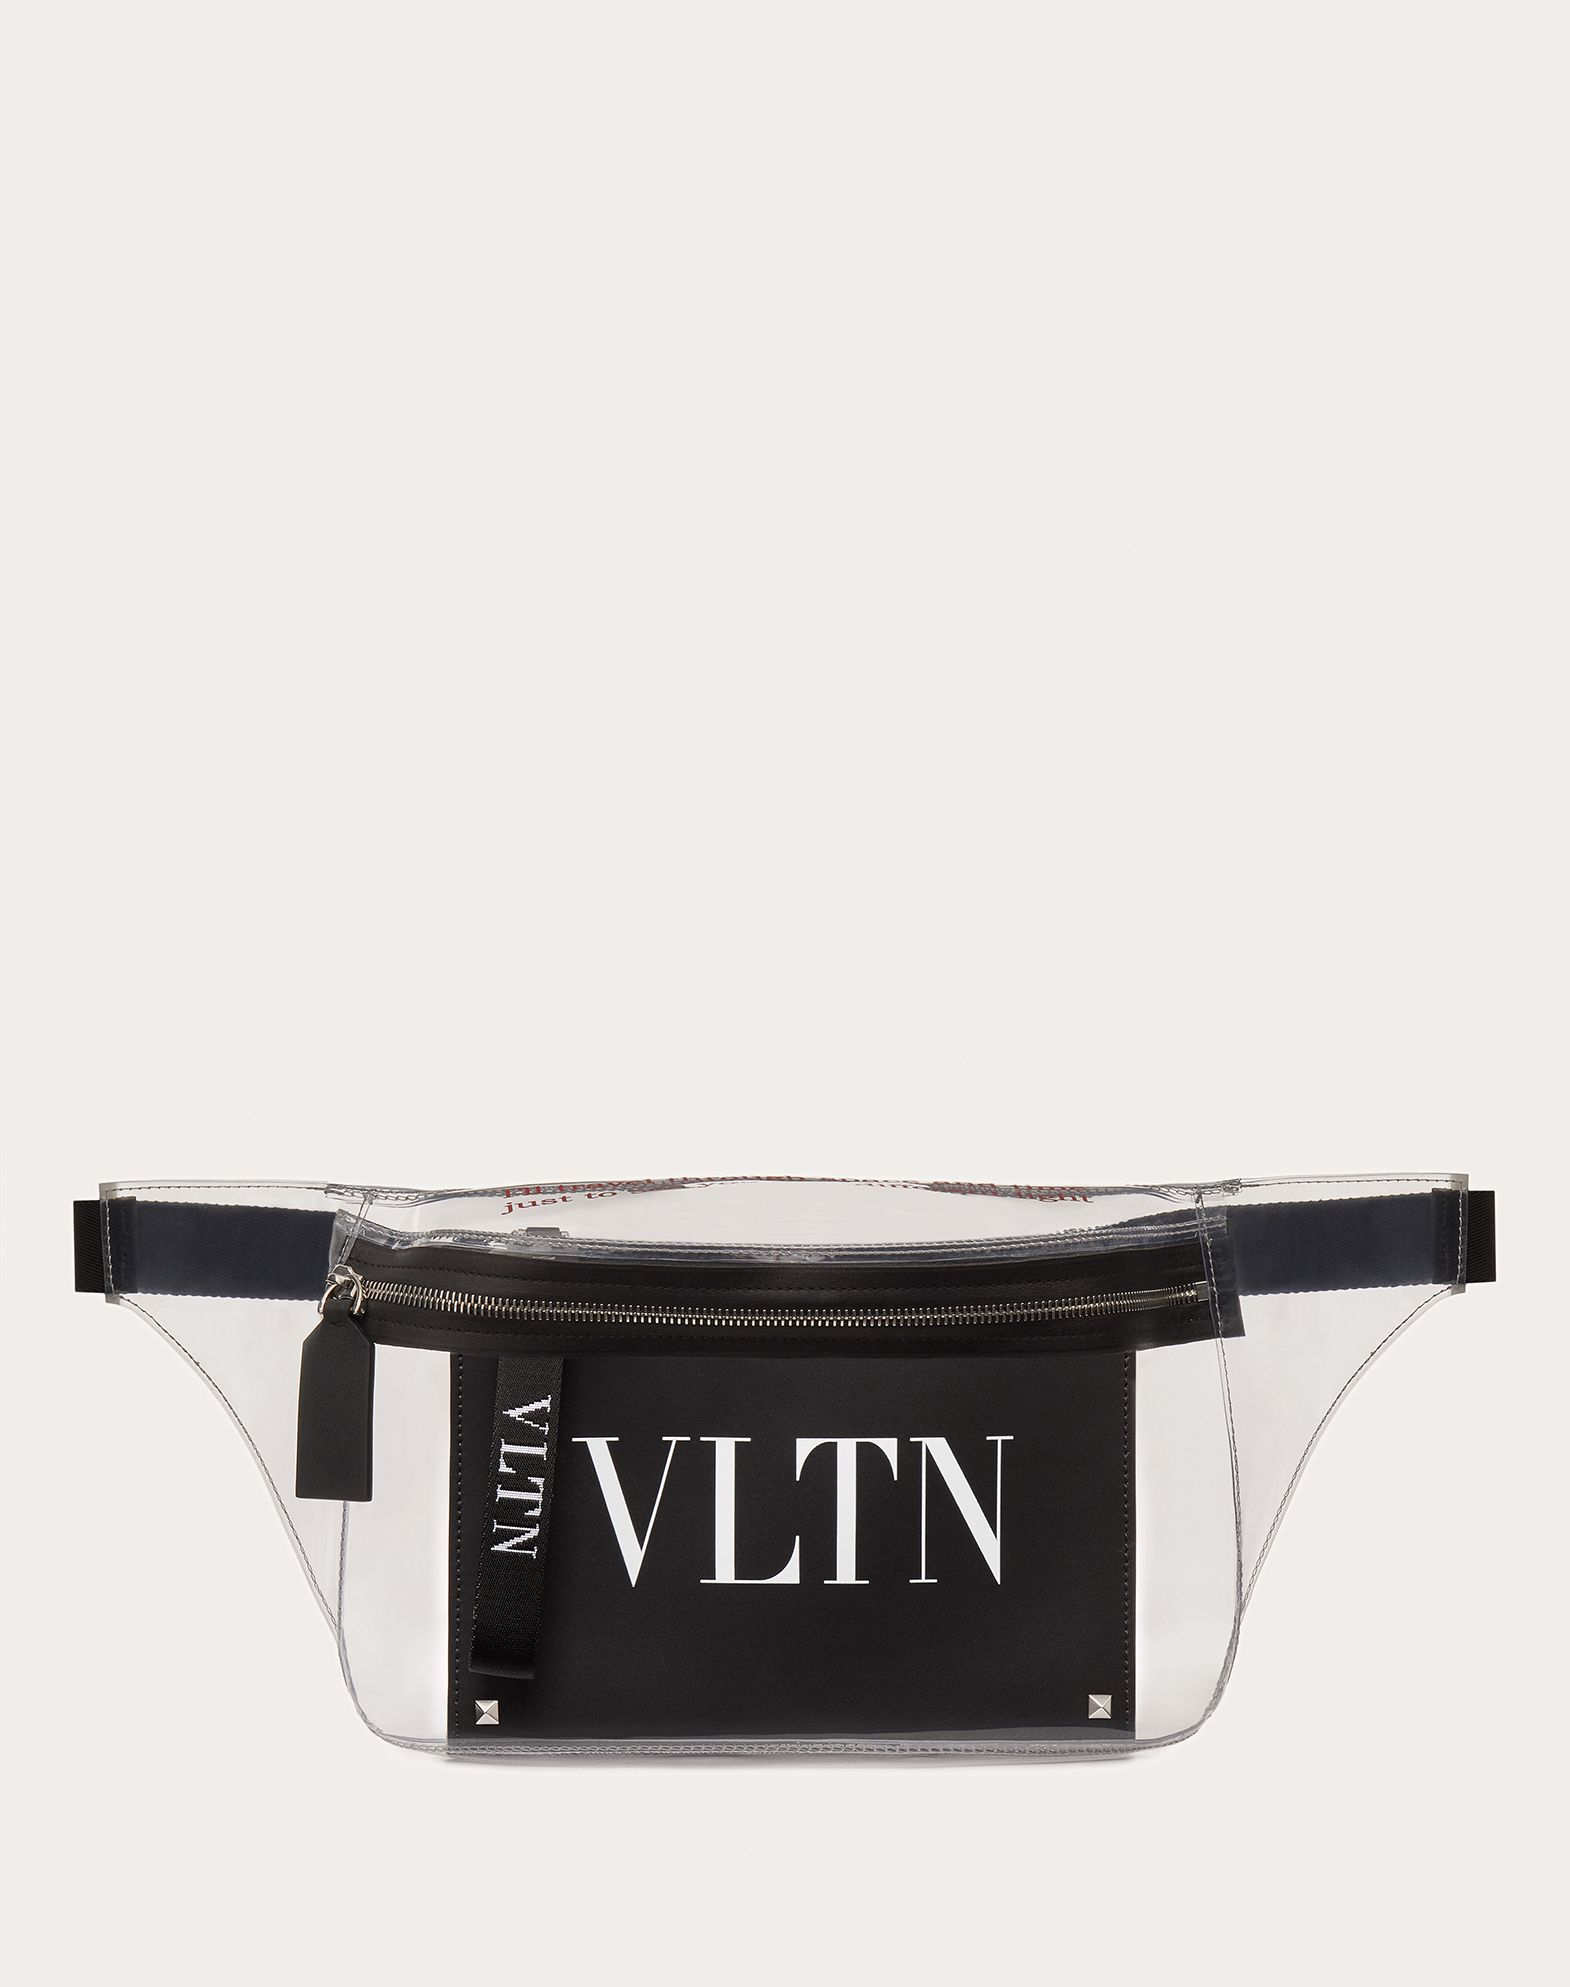 VLTN Transparent Belt Bag